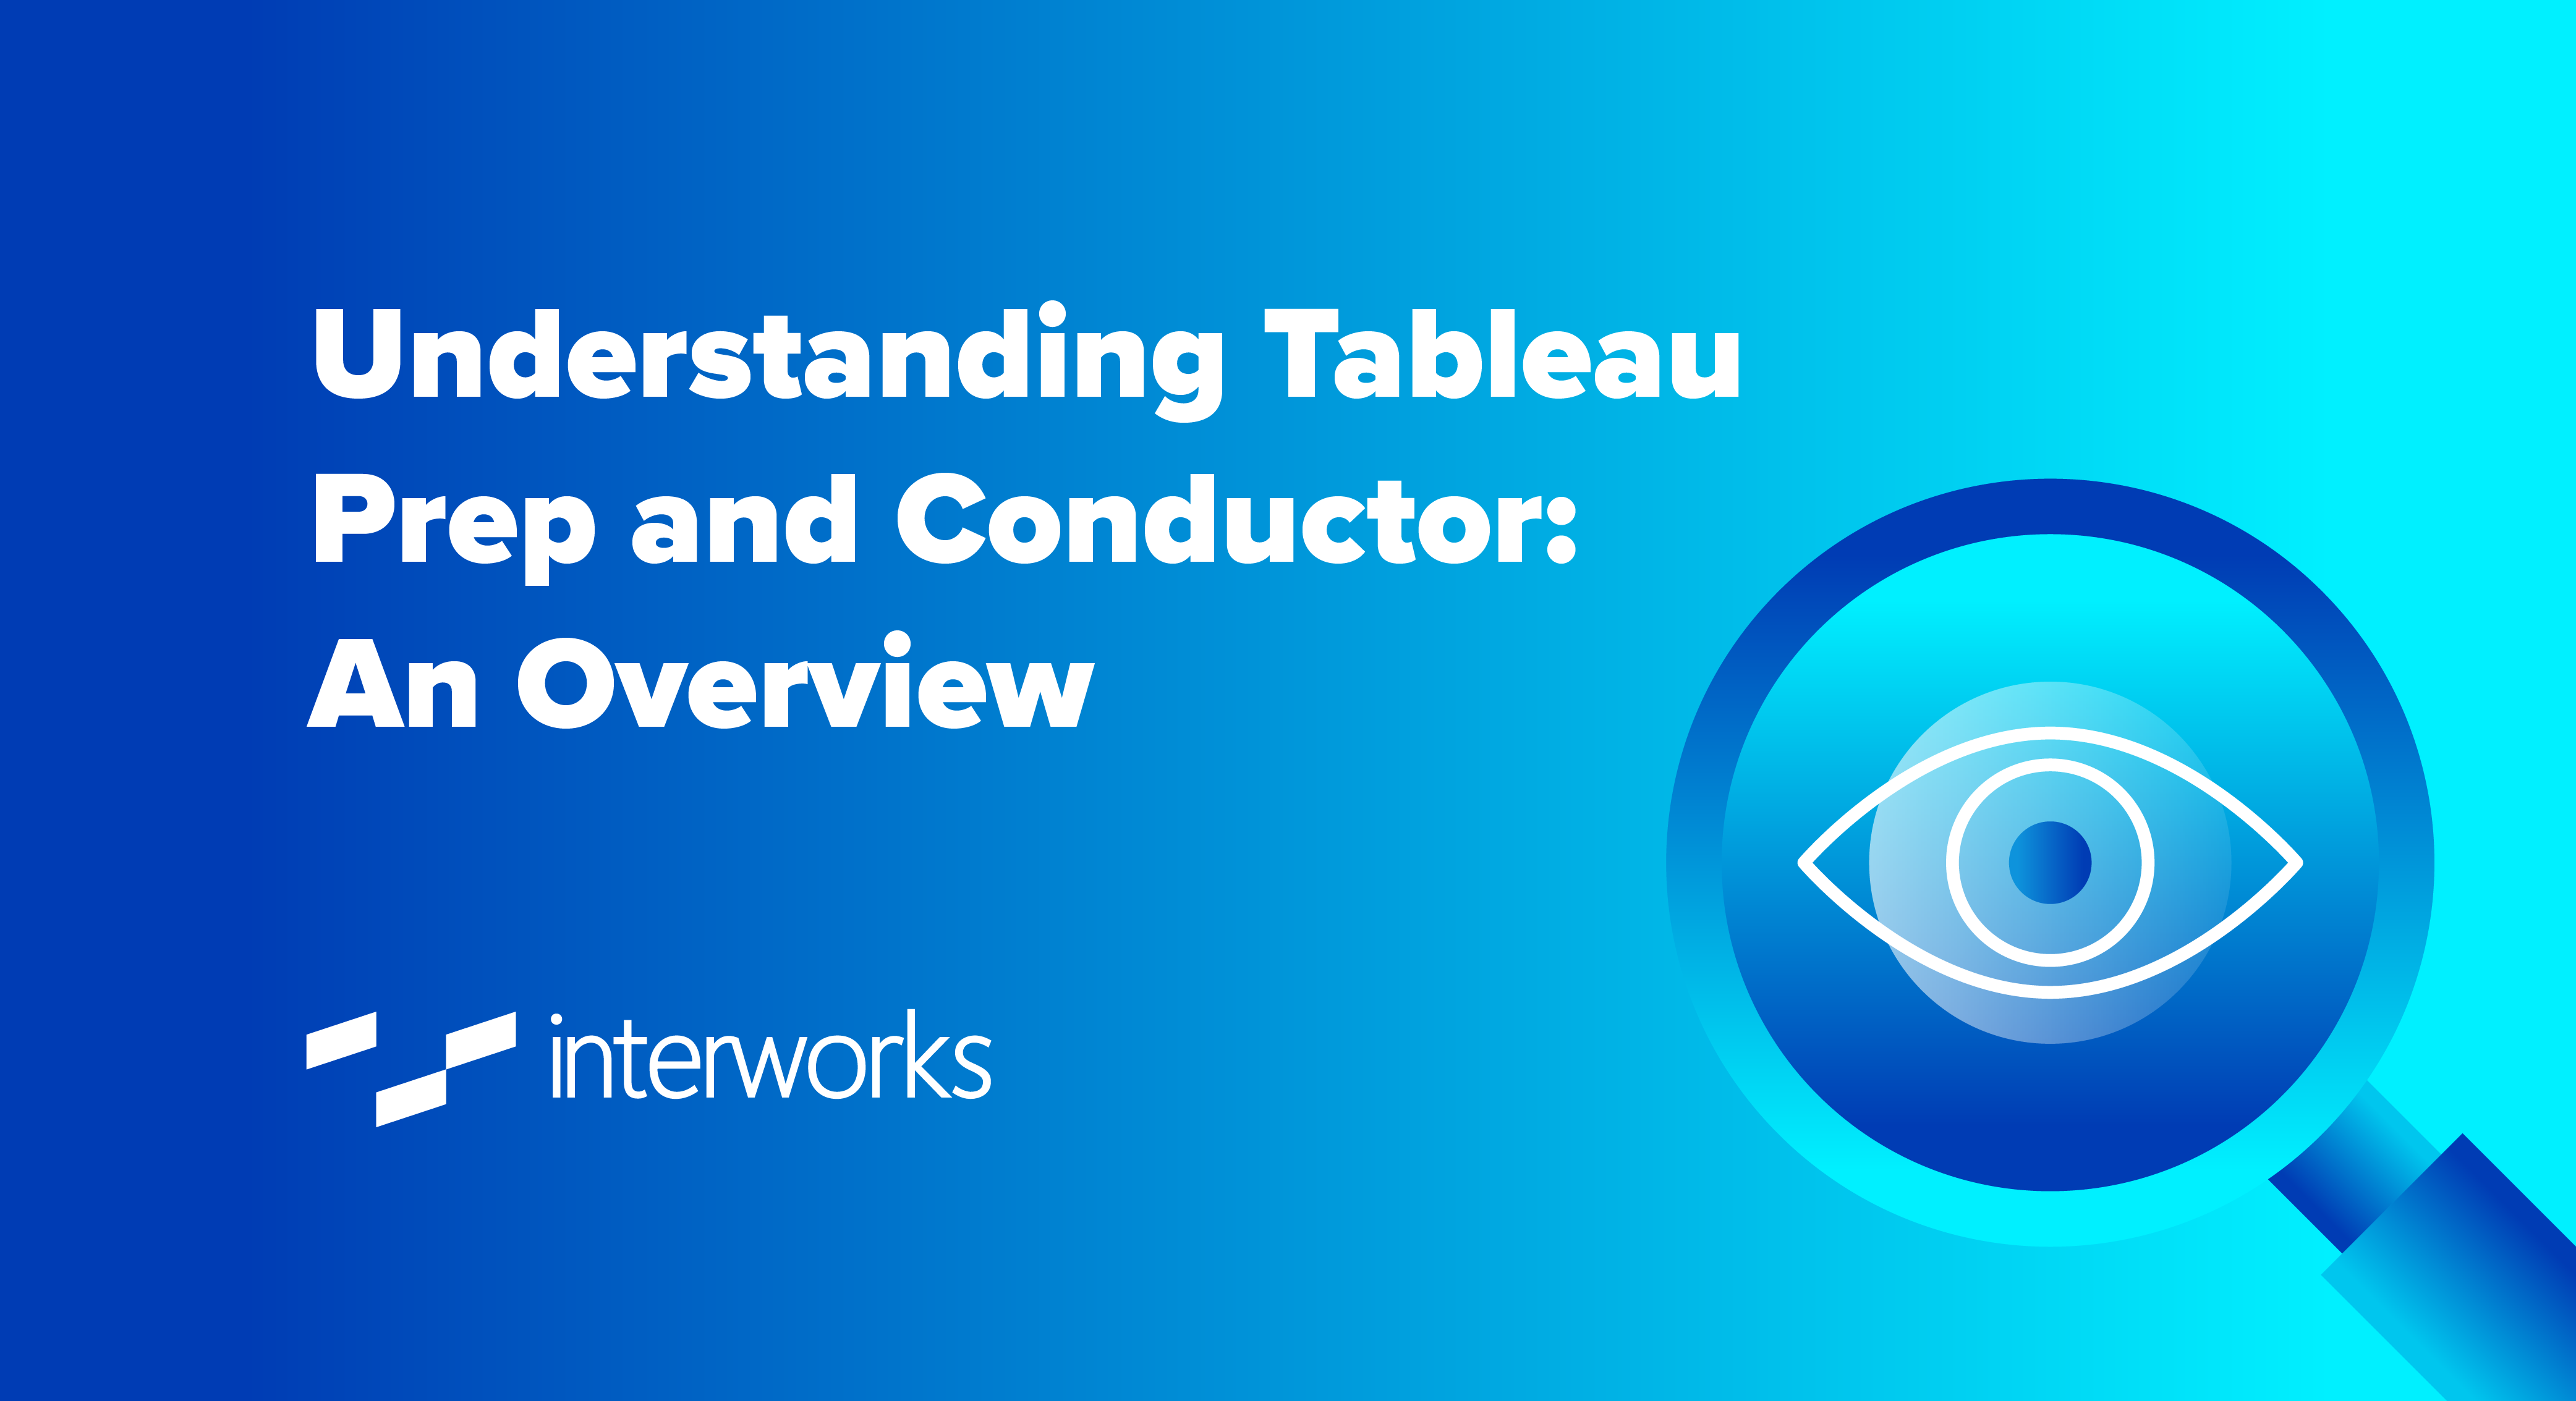 Understanding Tableau Prep and Conductor: An Overview